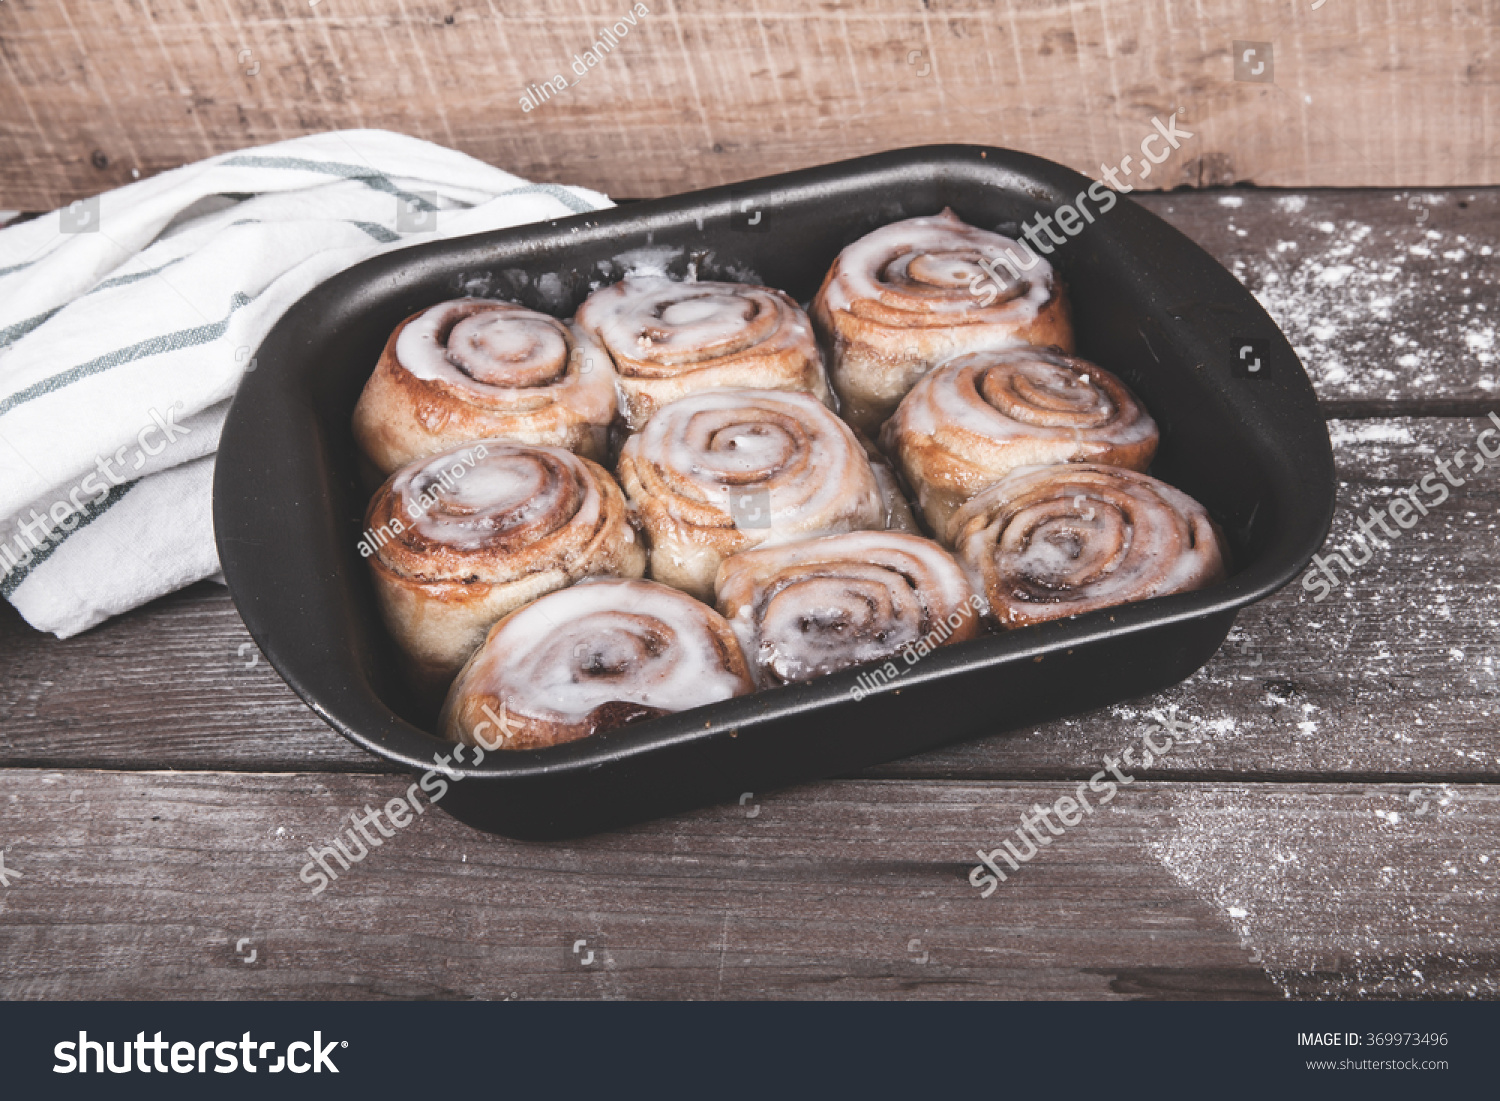 Cinnabon on a wooden background #369973496